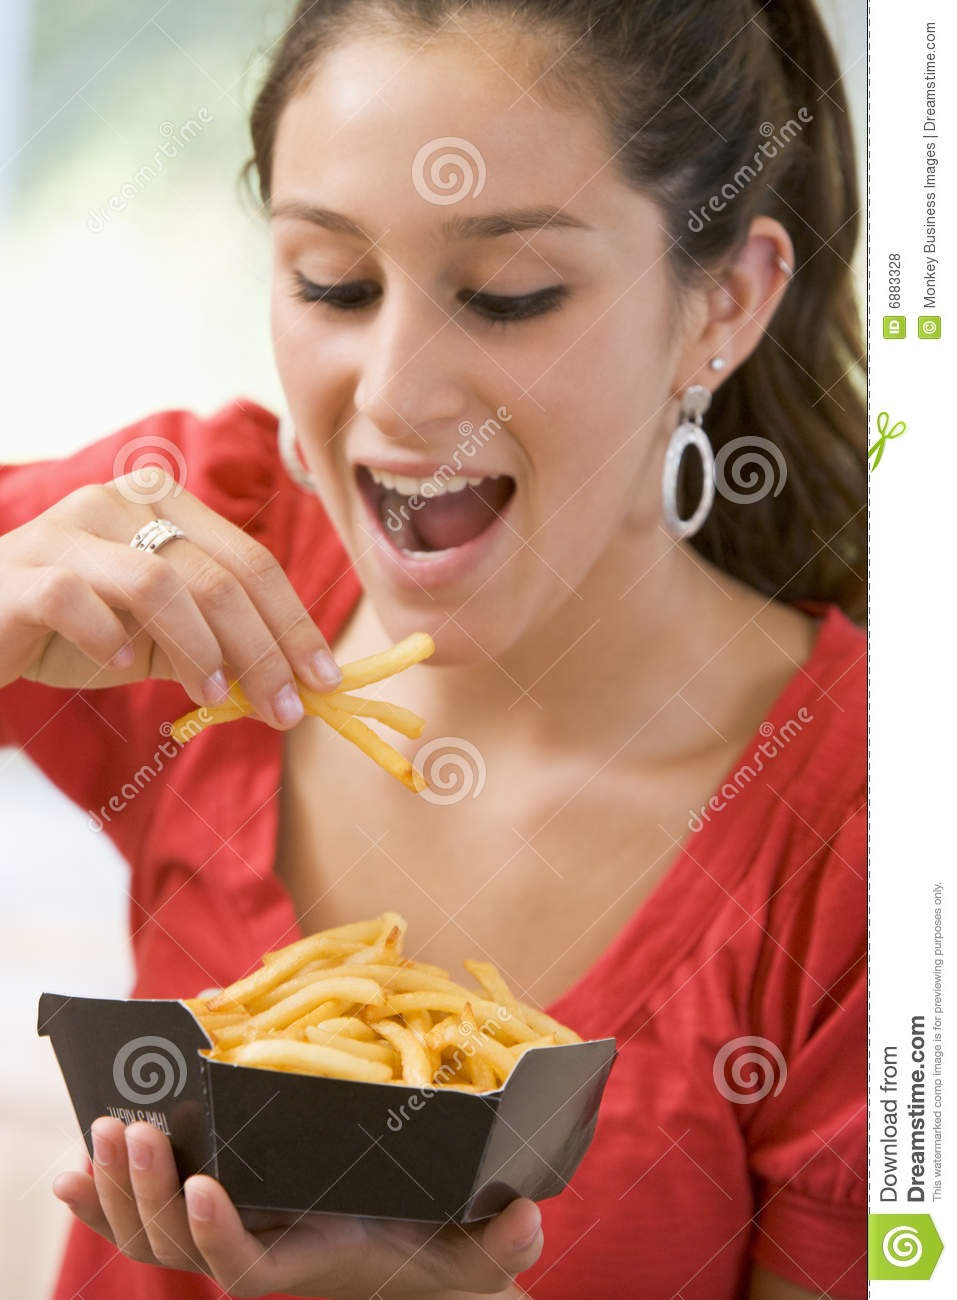 Teenage Girl Eating French Fries Royalty Free Stock Photos ...